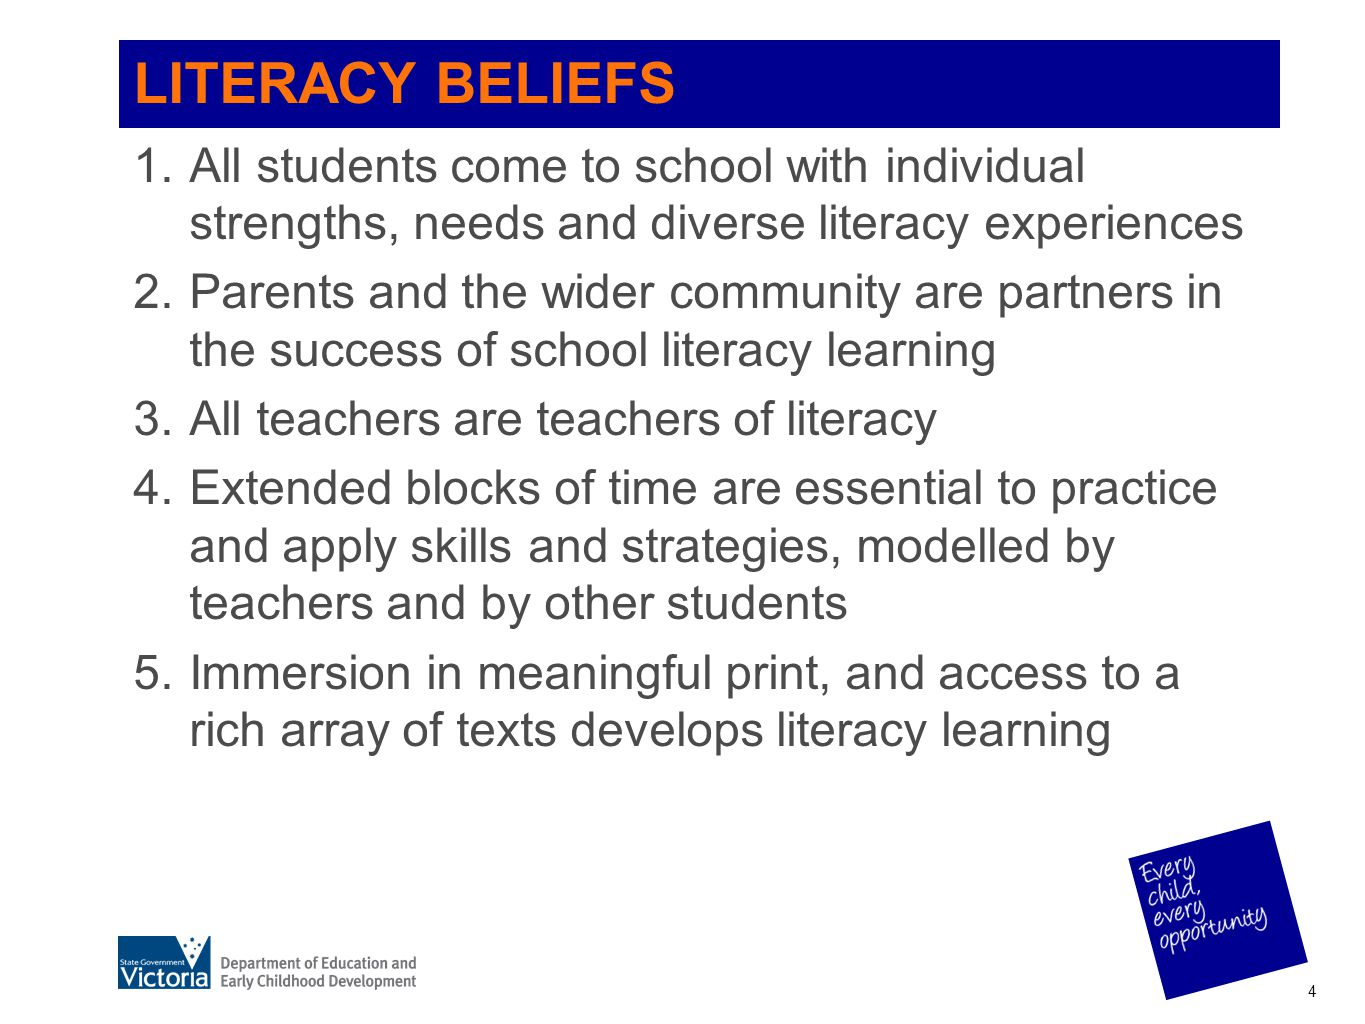 LITERACY BELIEFS All students come to school with individual strengths, needs and diverse literacy experiences.